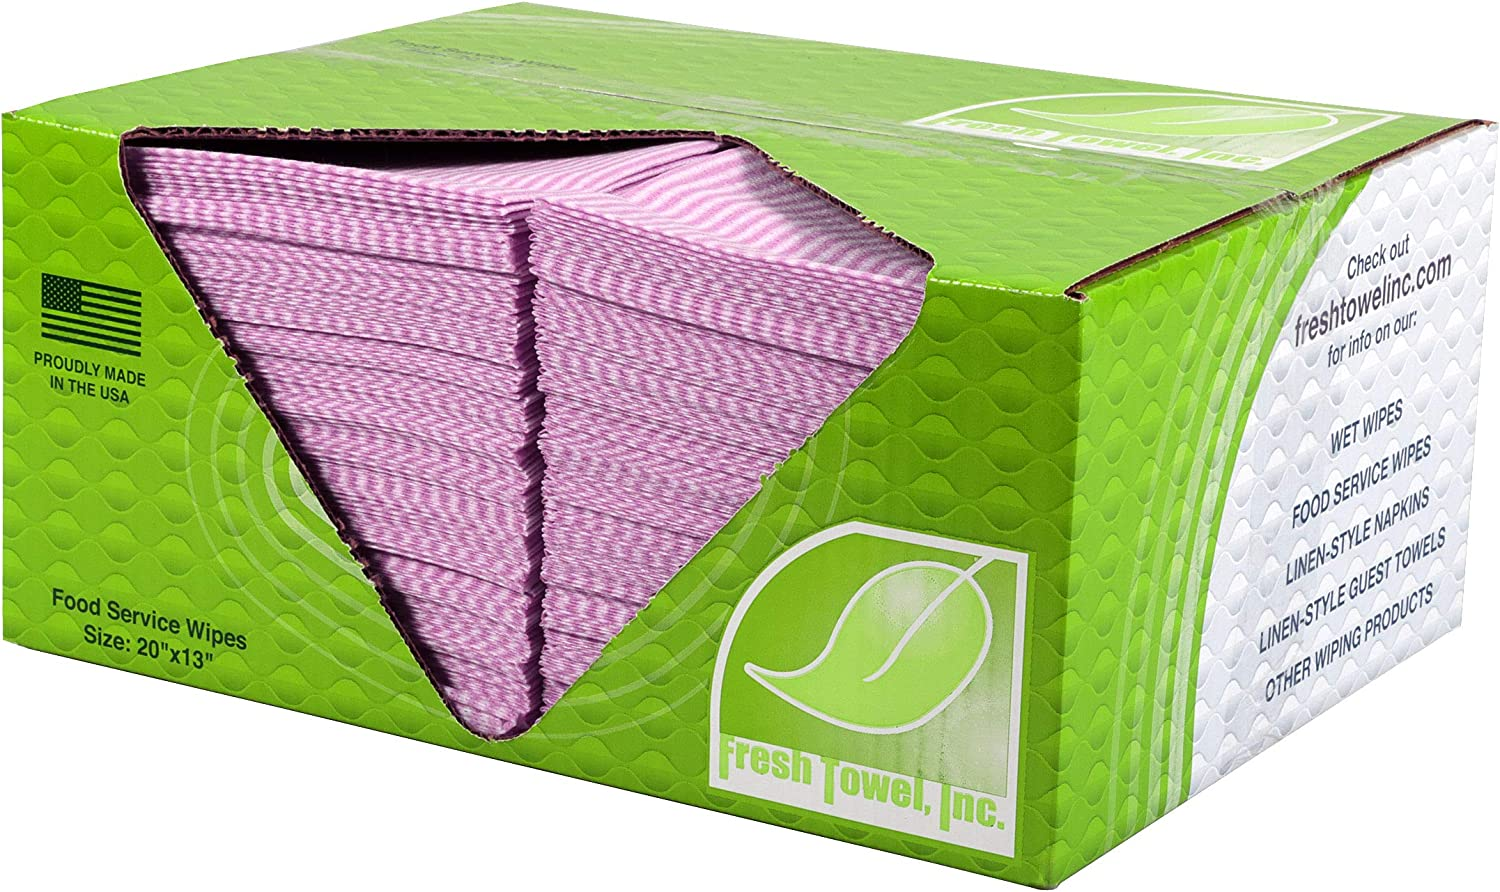 Fresh Towel Foodservice Reusable Paper Towels - 1/4 Fold, 13 x 20 inches - Pink Straight Line Pattern (1 Case of 200) All Purpose Cleaning Towels